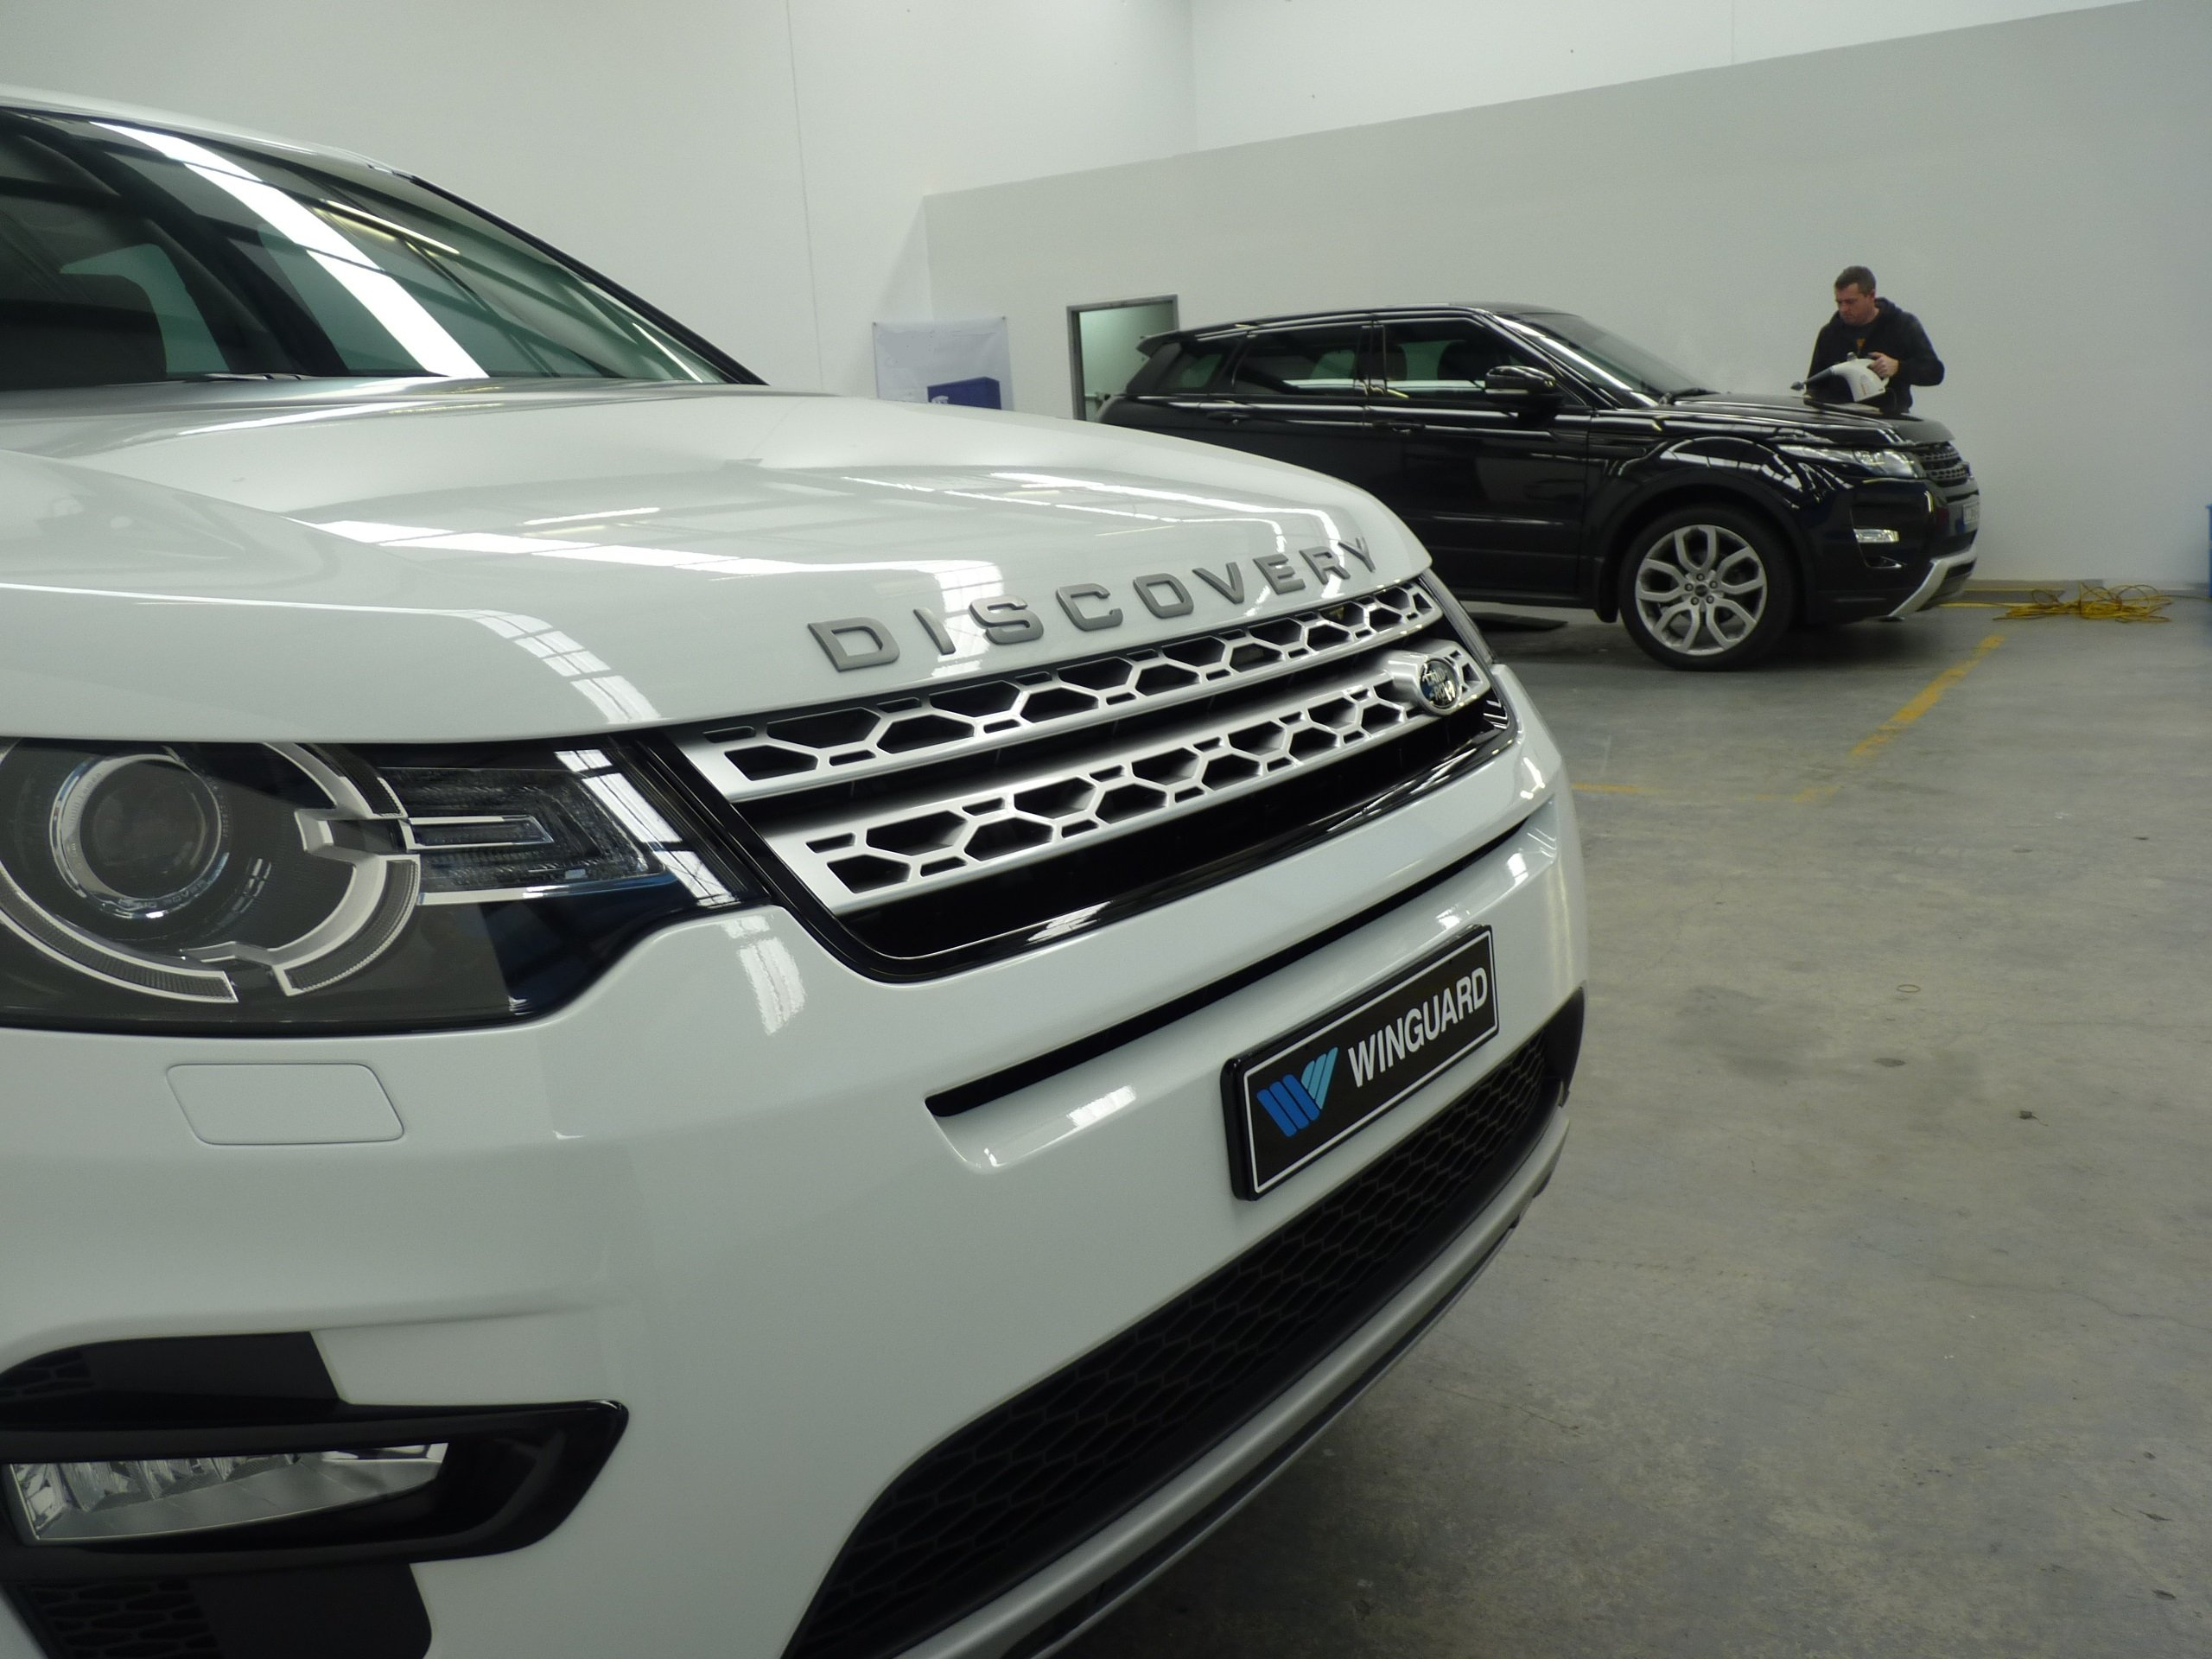 Range Rover, PPF, winguard, Adelaide, range rover, velar, ppf, auto film, 2017, 2018, stone chip film, paint protection film, winguard, adelaide, matte paint, matt paint, car bra, expert, expert wrap, xpel, suntek, opticoat, stek, 3m, adelaide paint protection, d and s, attention to detail, adelaide, south australia, elite